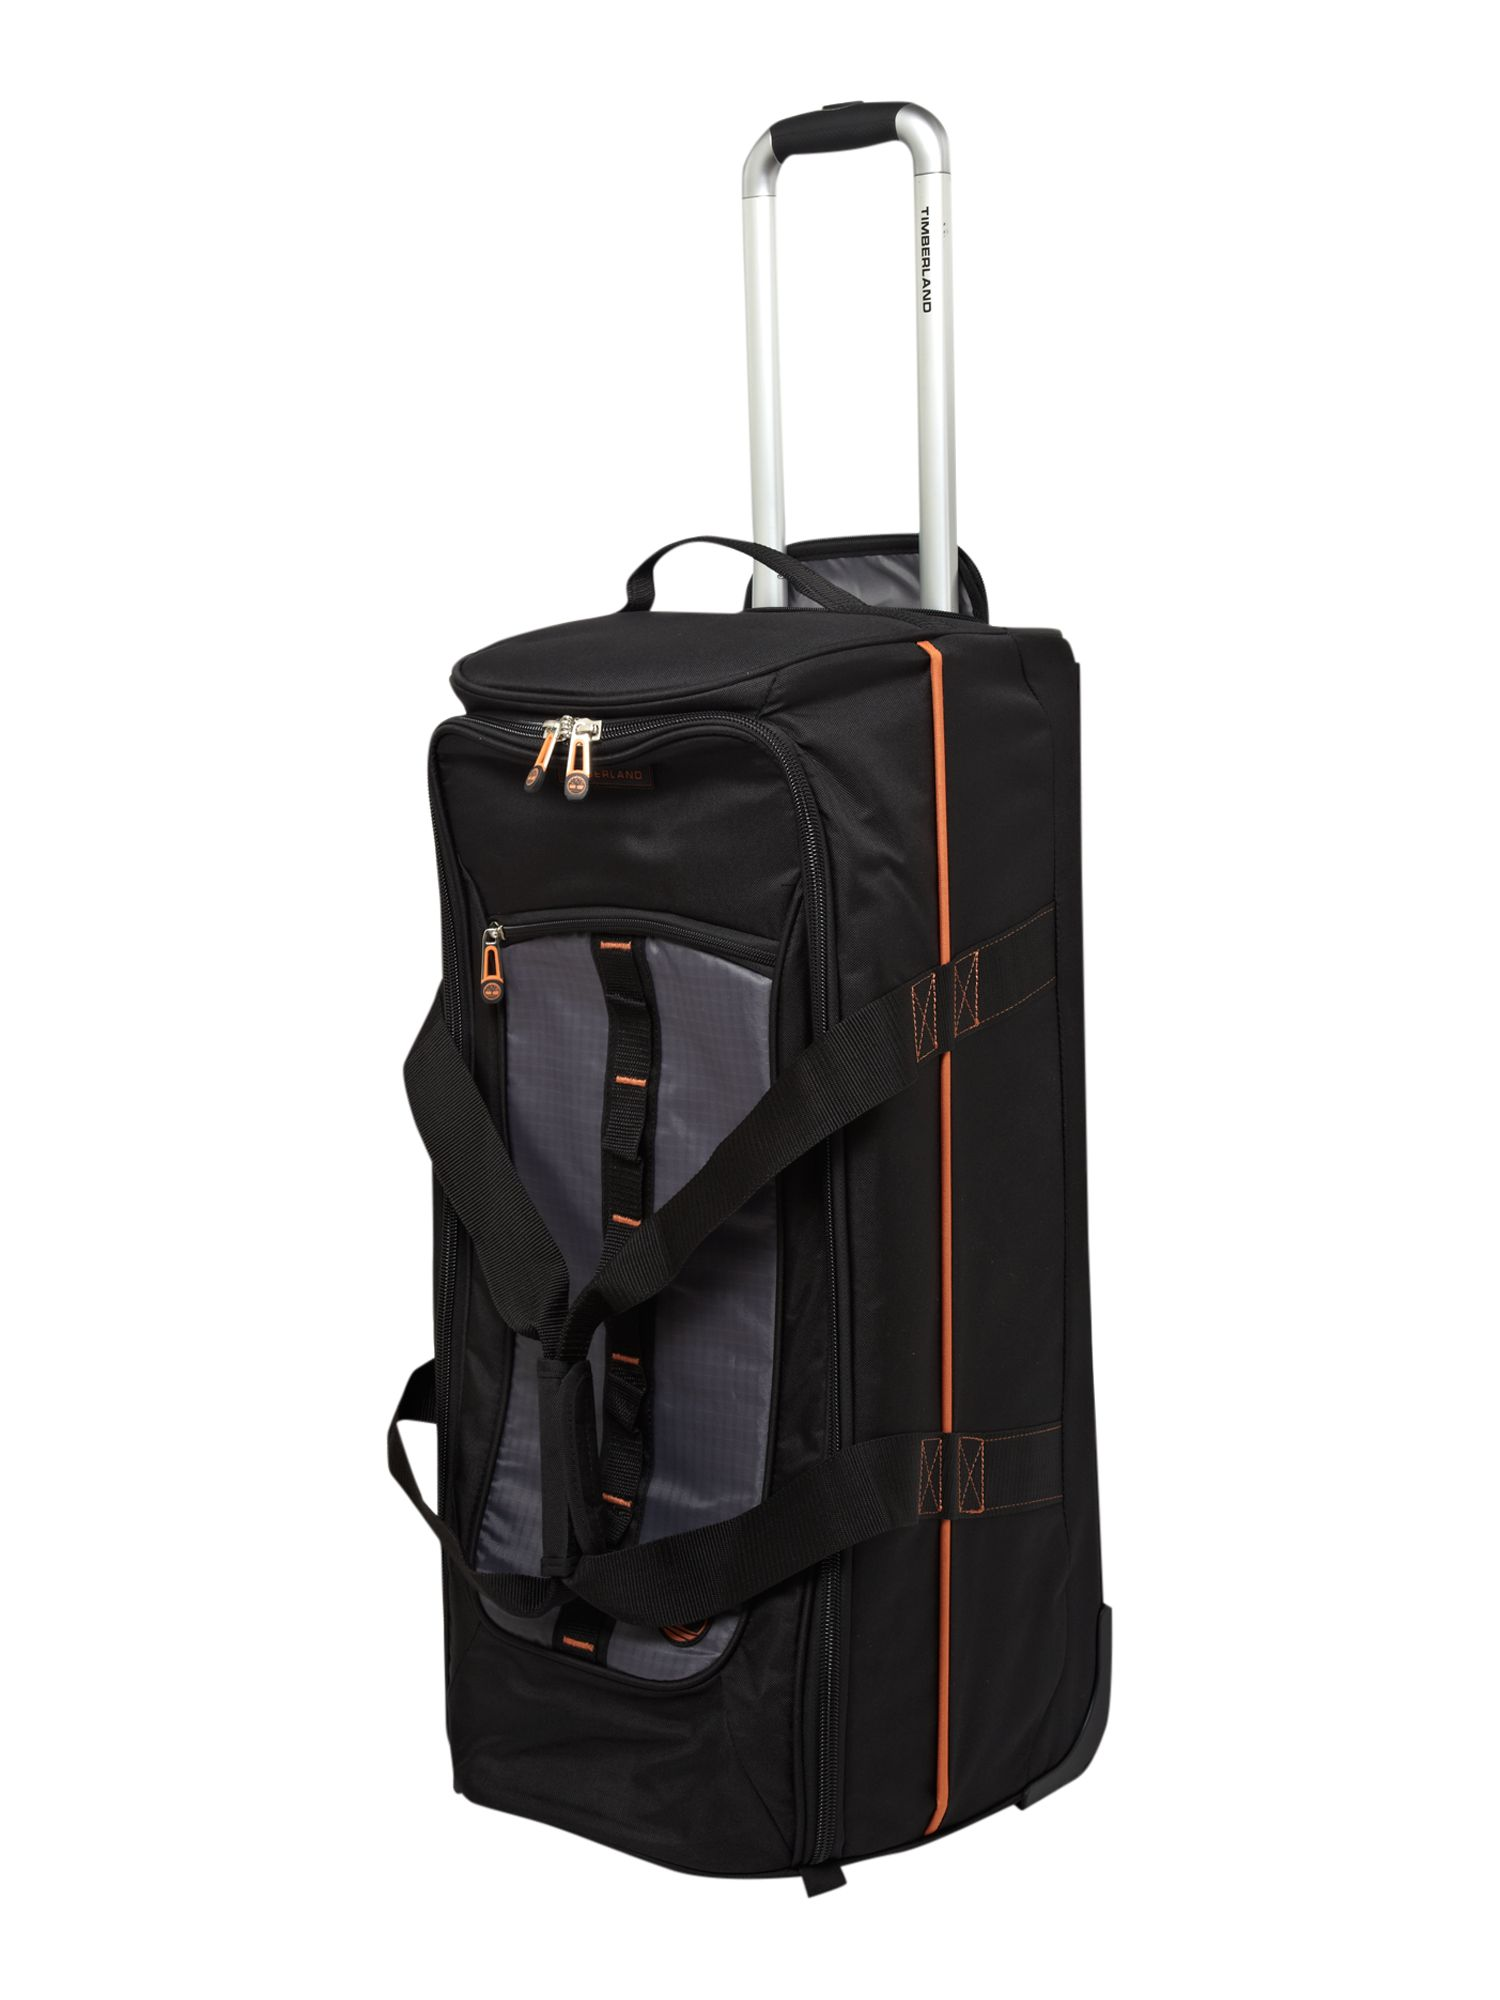 Jay Peak 28 Wheeled Duffle Black